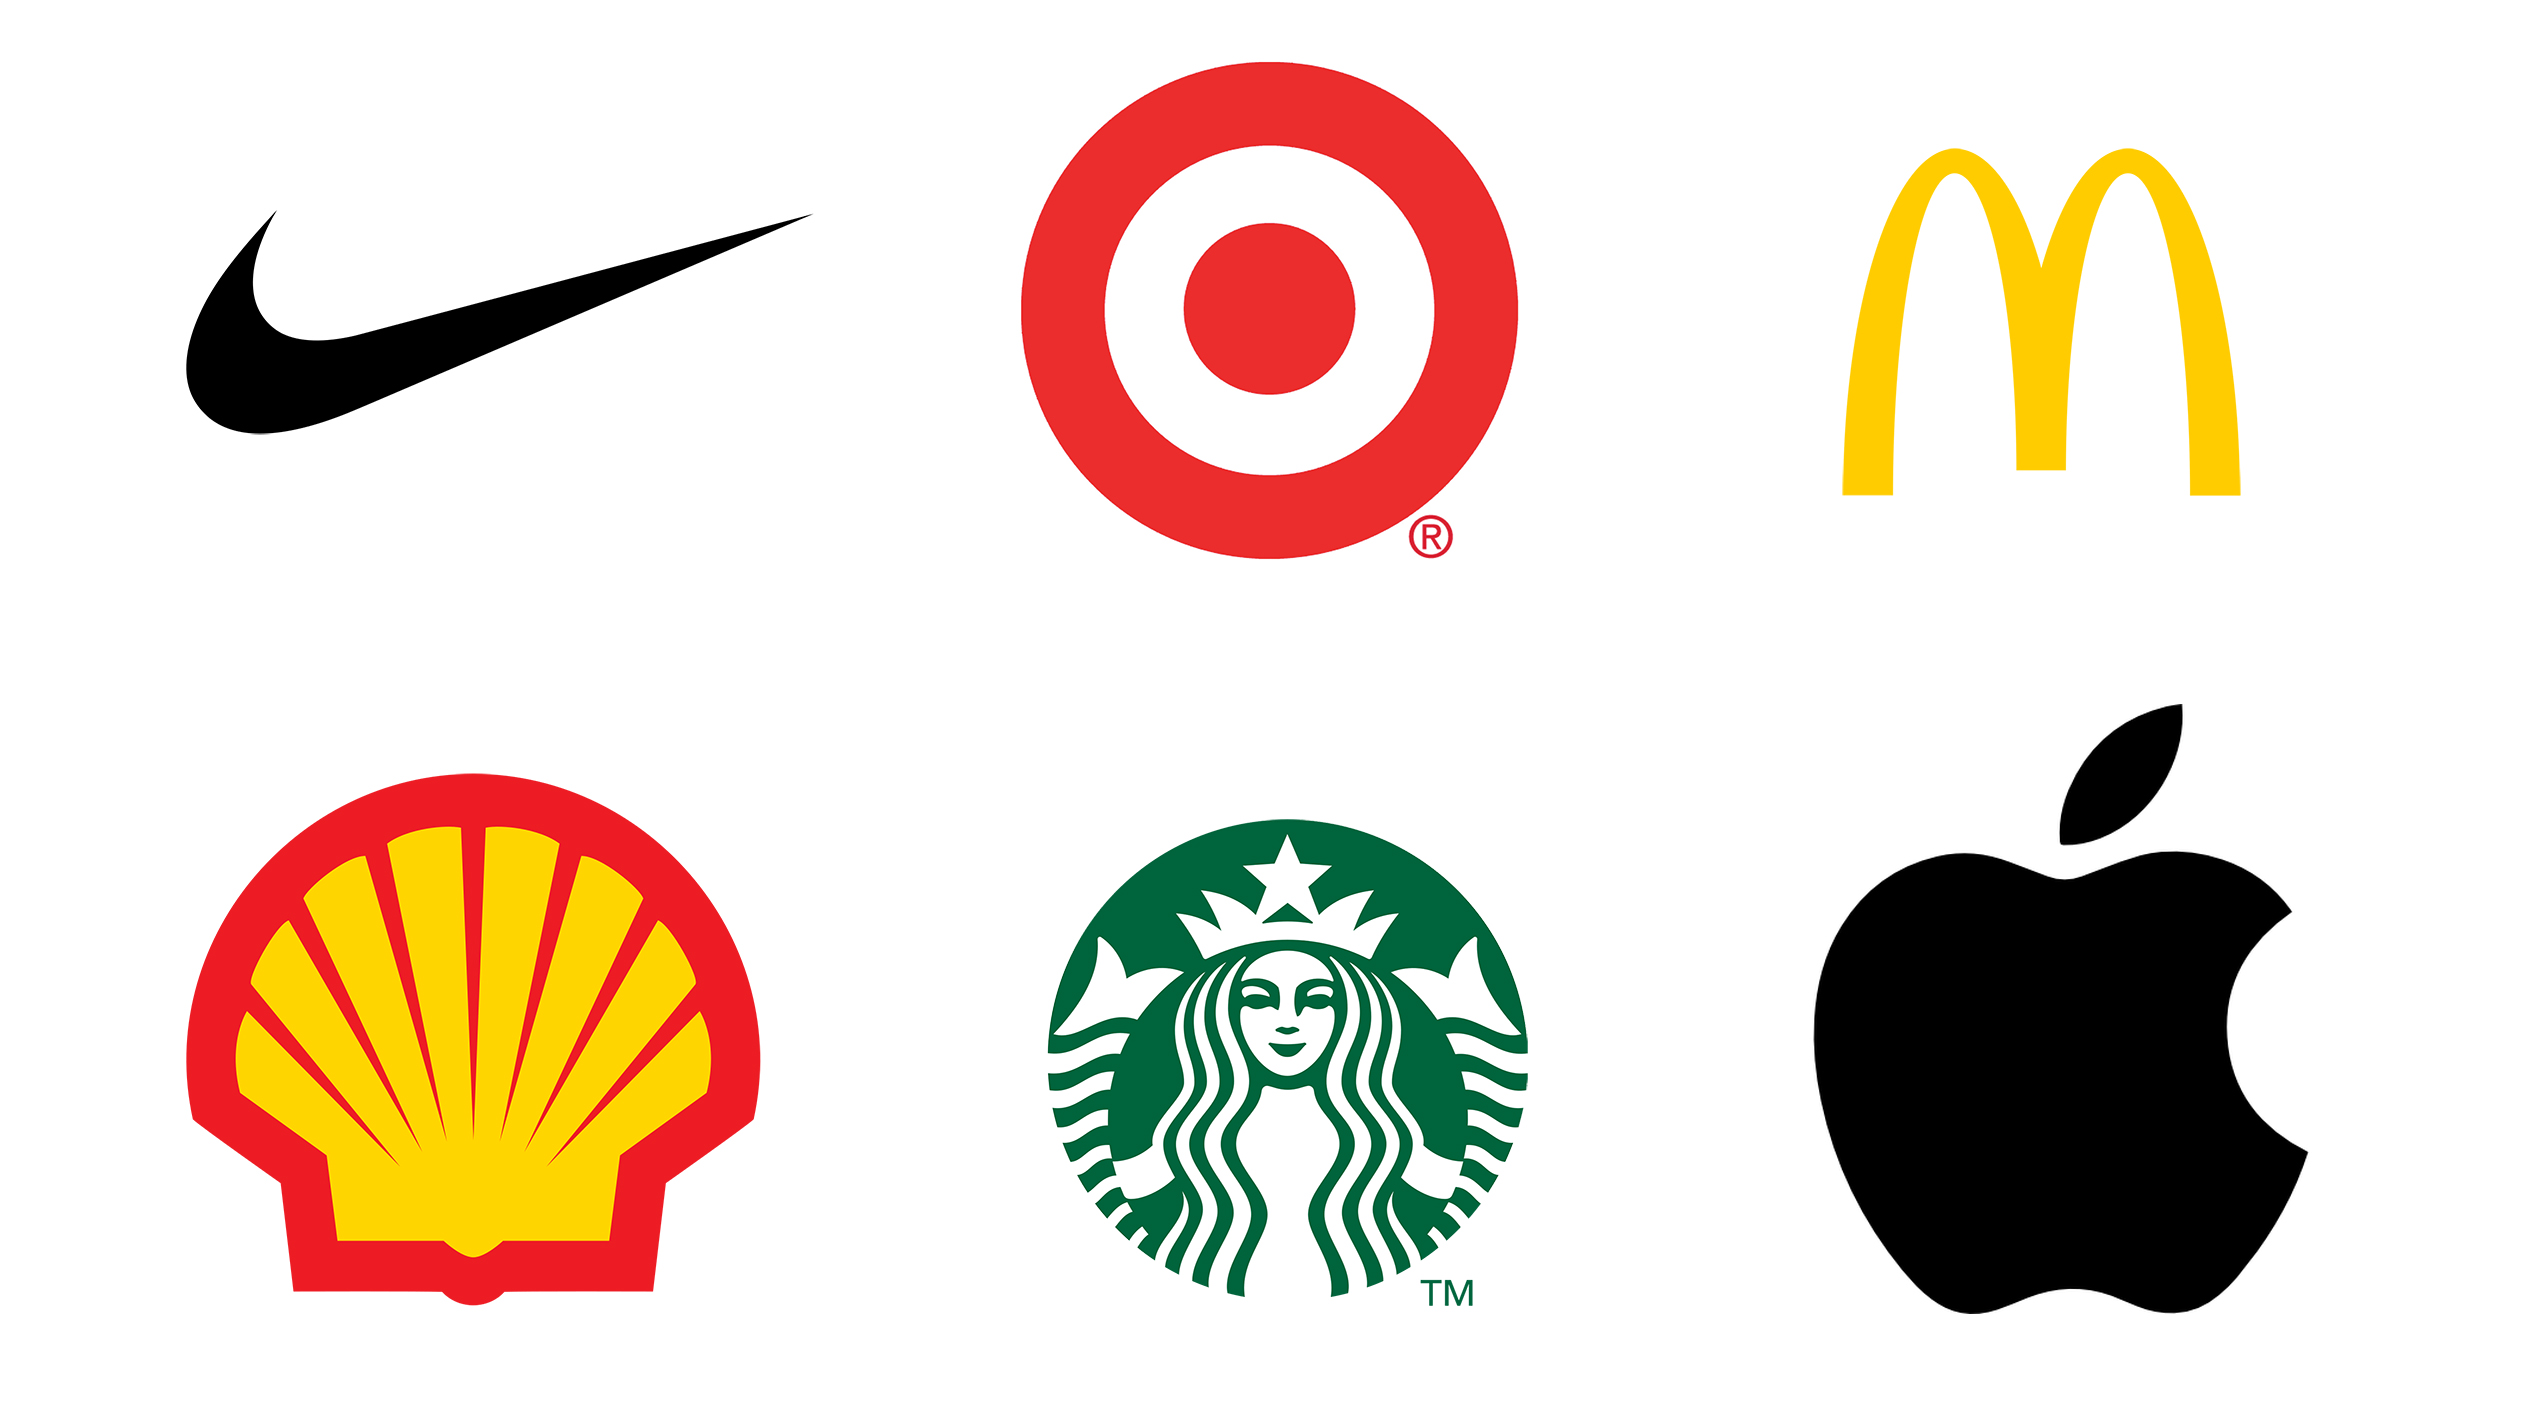 Unique logo designs